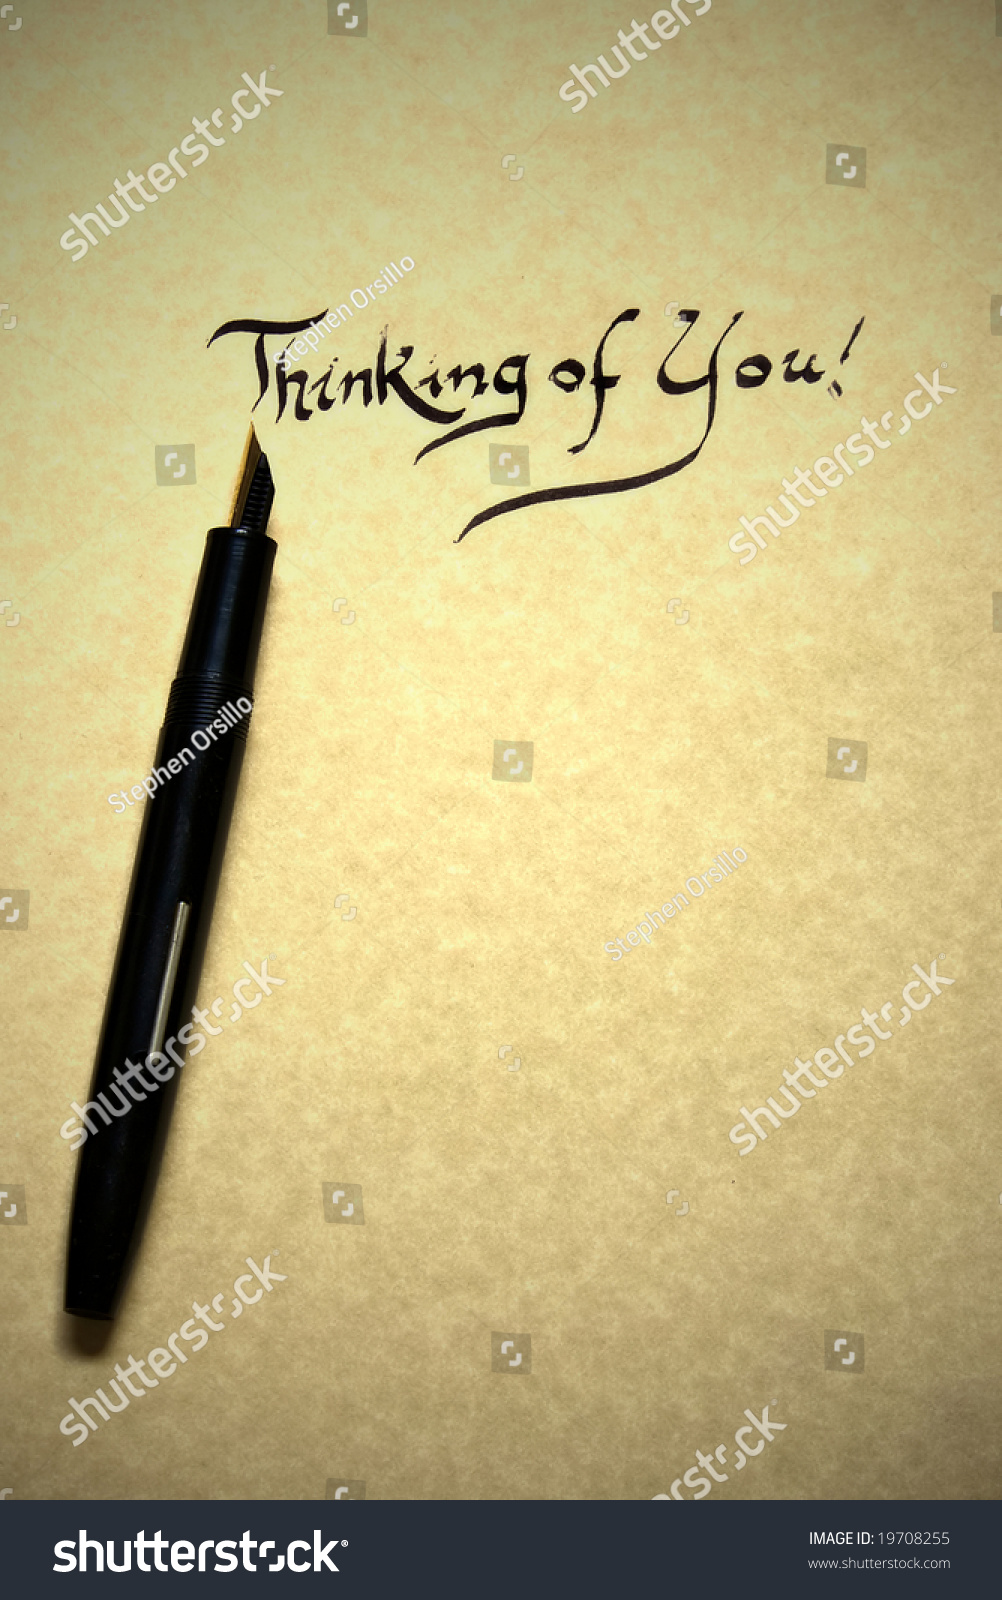 Thinking You Letter Being Written Calligraphy Stock Photo